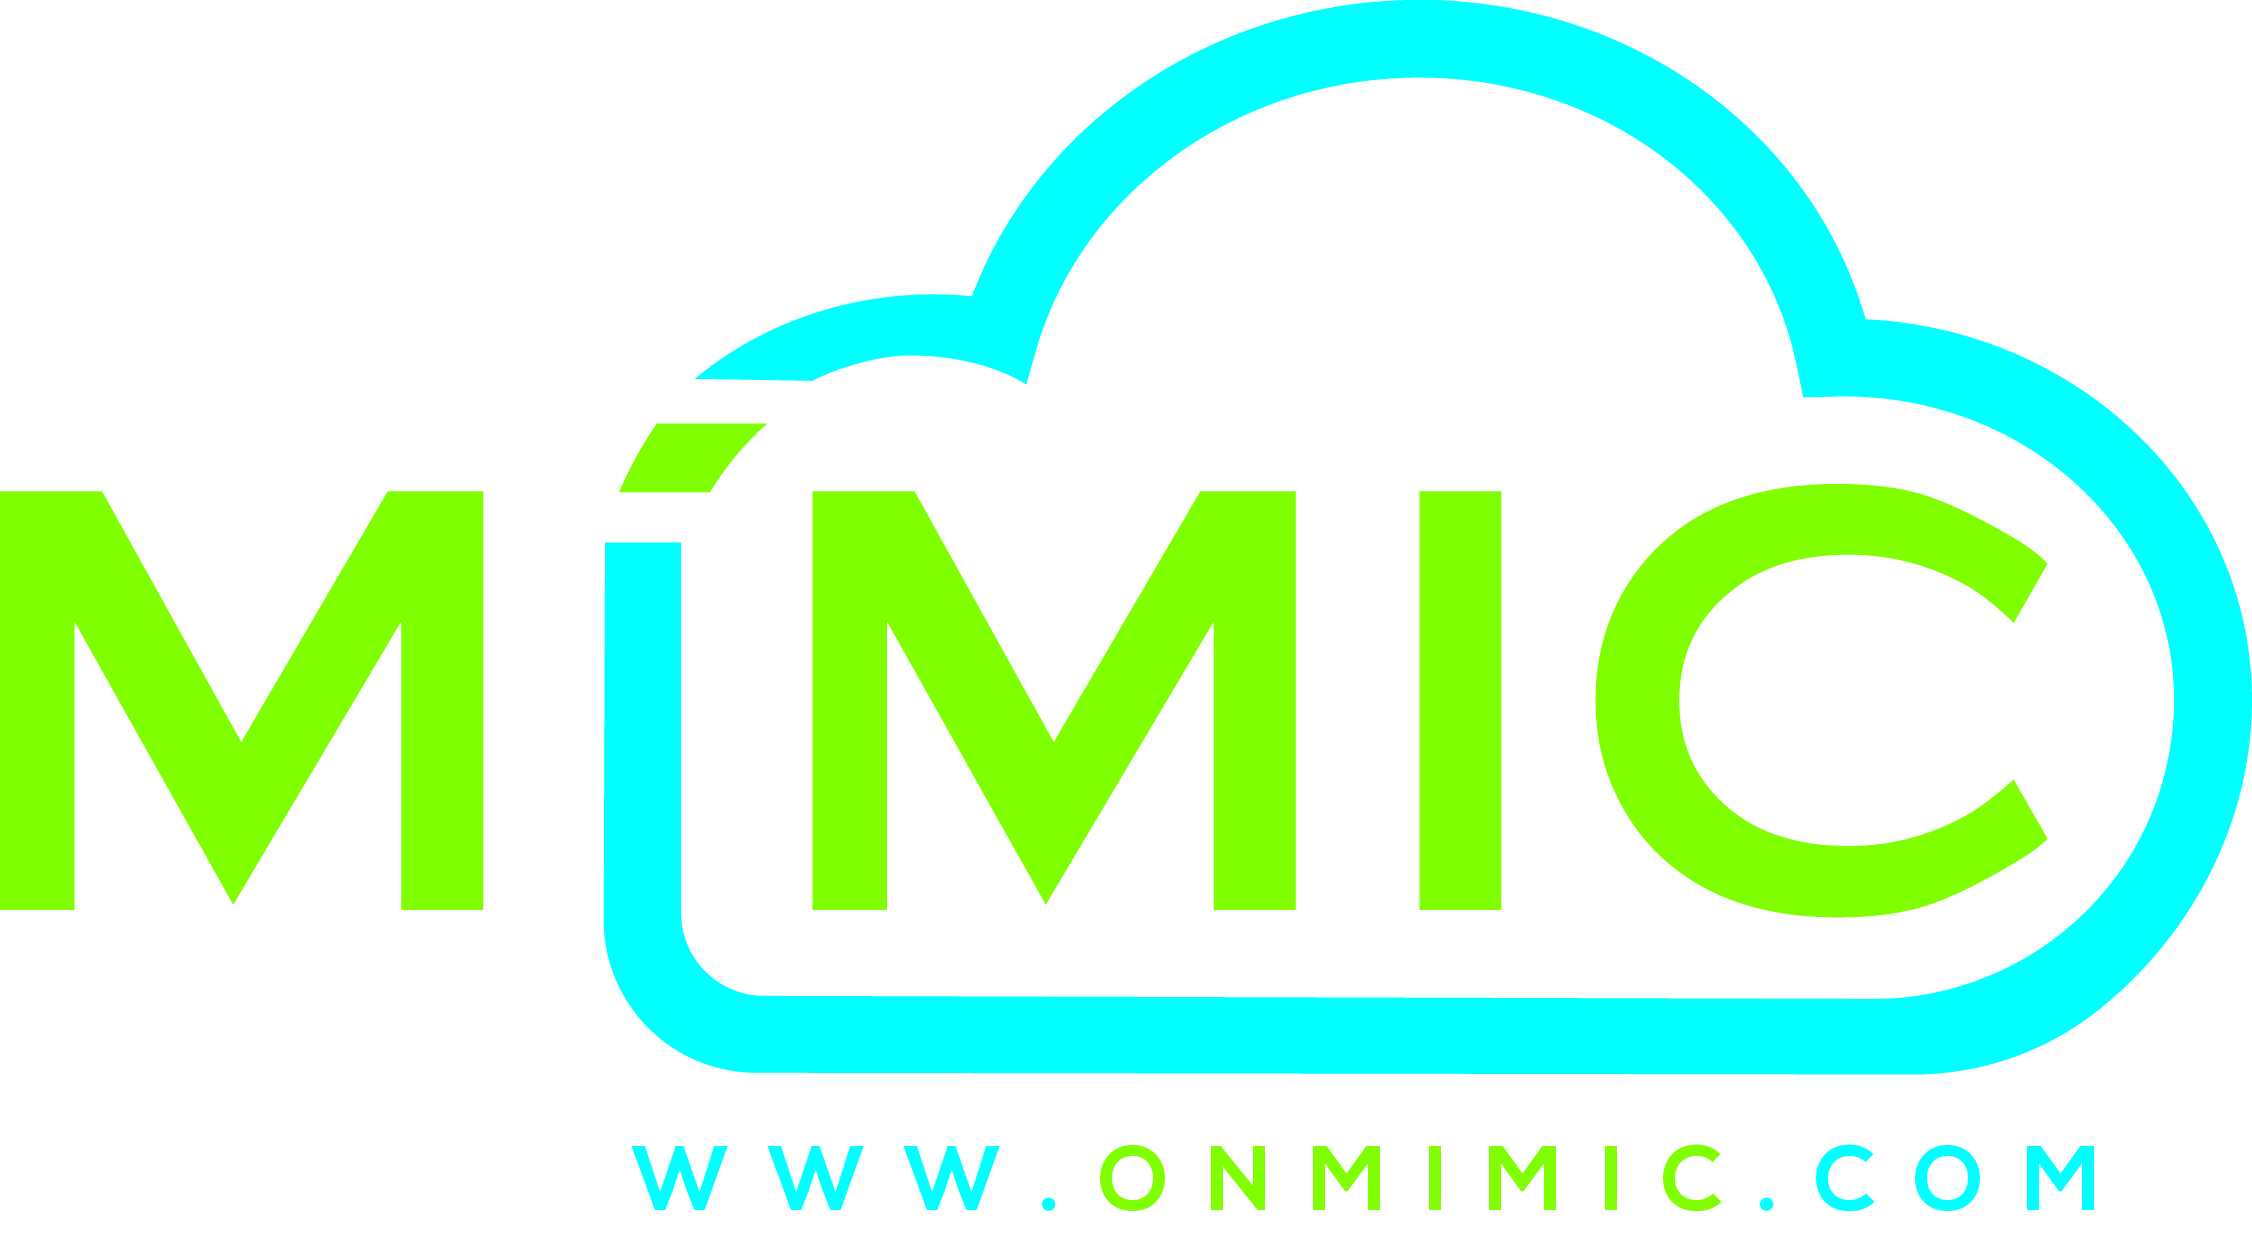 MIMIC announces a strategic relationship with CHATBUNKER, LLC to expand their product offering to include secure communications between member physicians